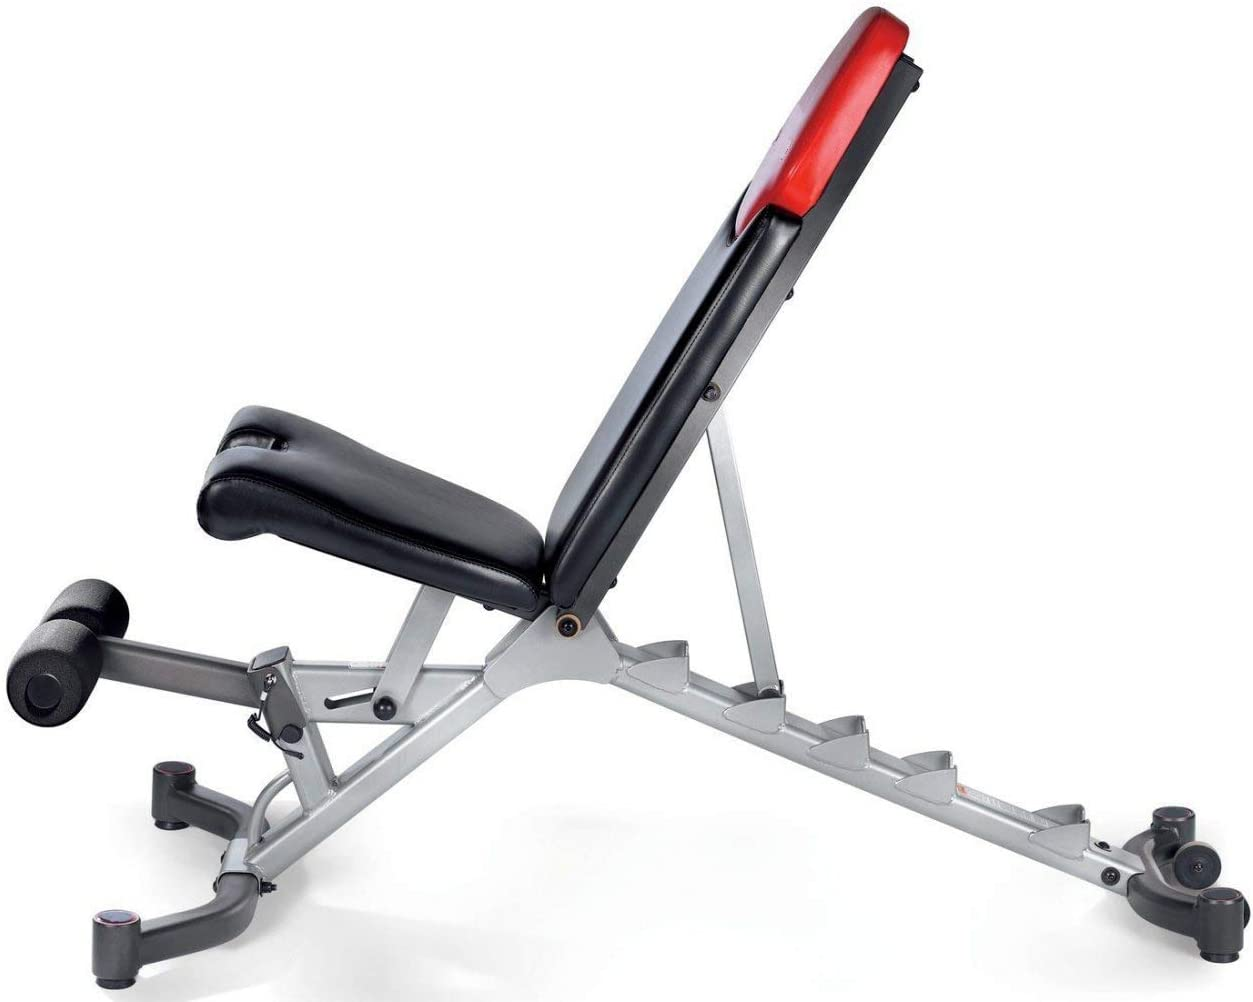 Mach7 5.1 Adjustable Bench 5 in 1 Transform any space into a personal free weight fitness center.